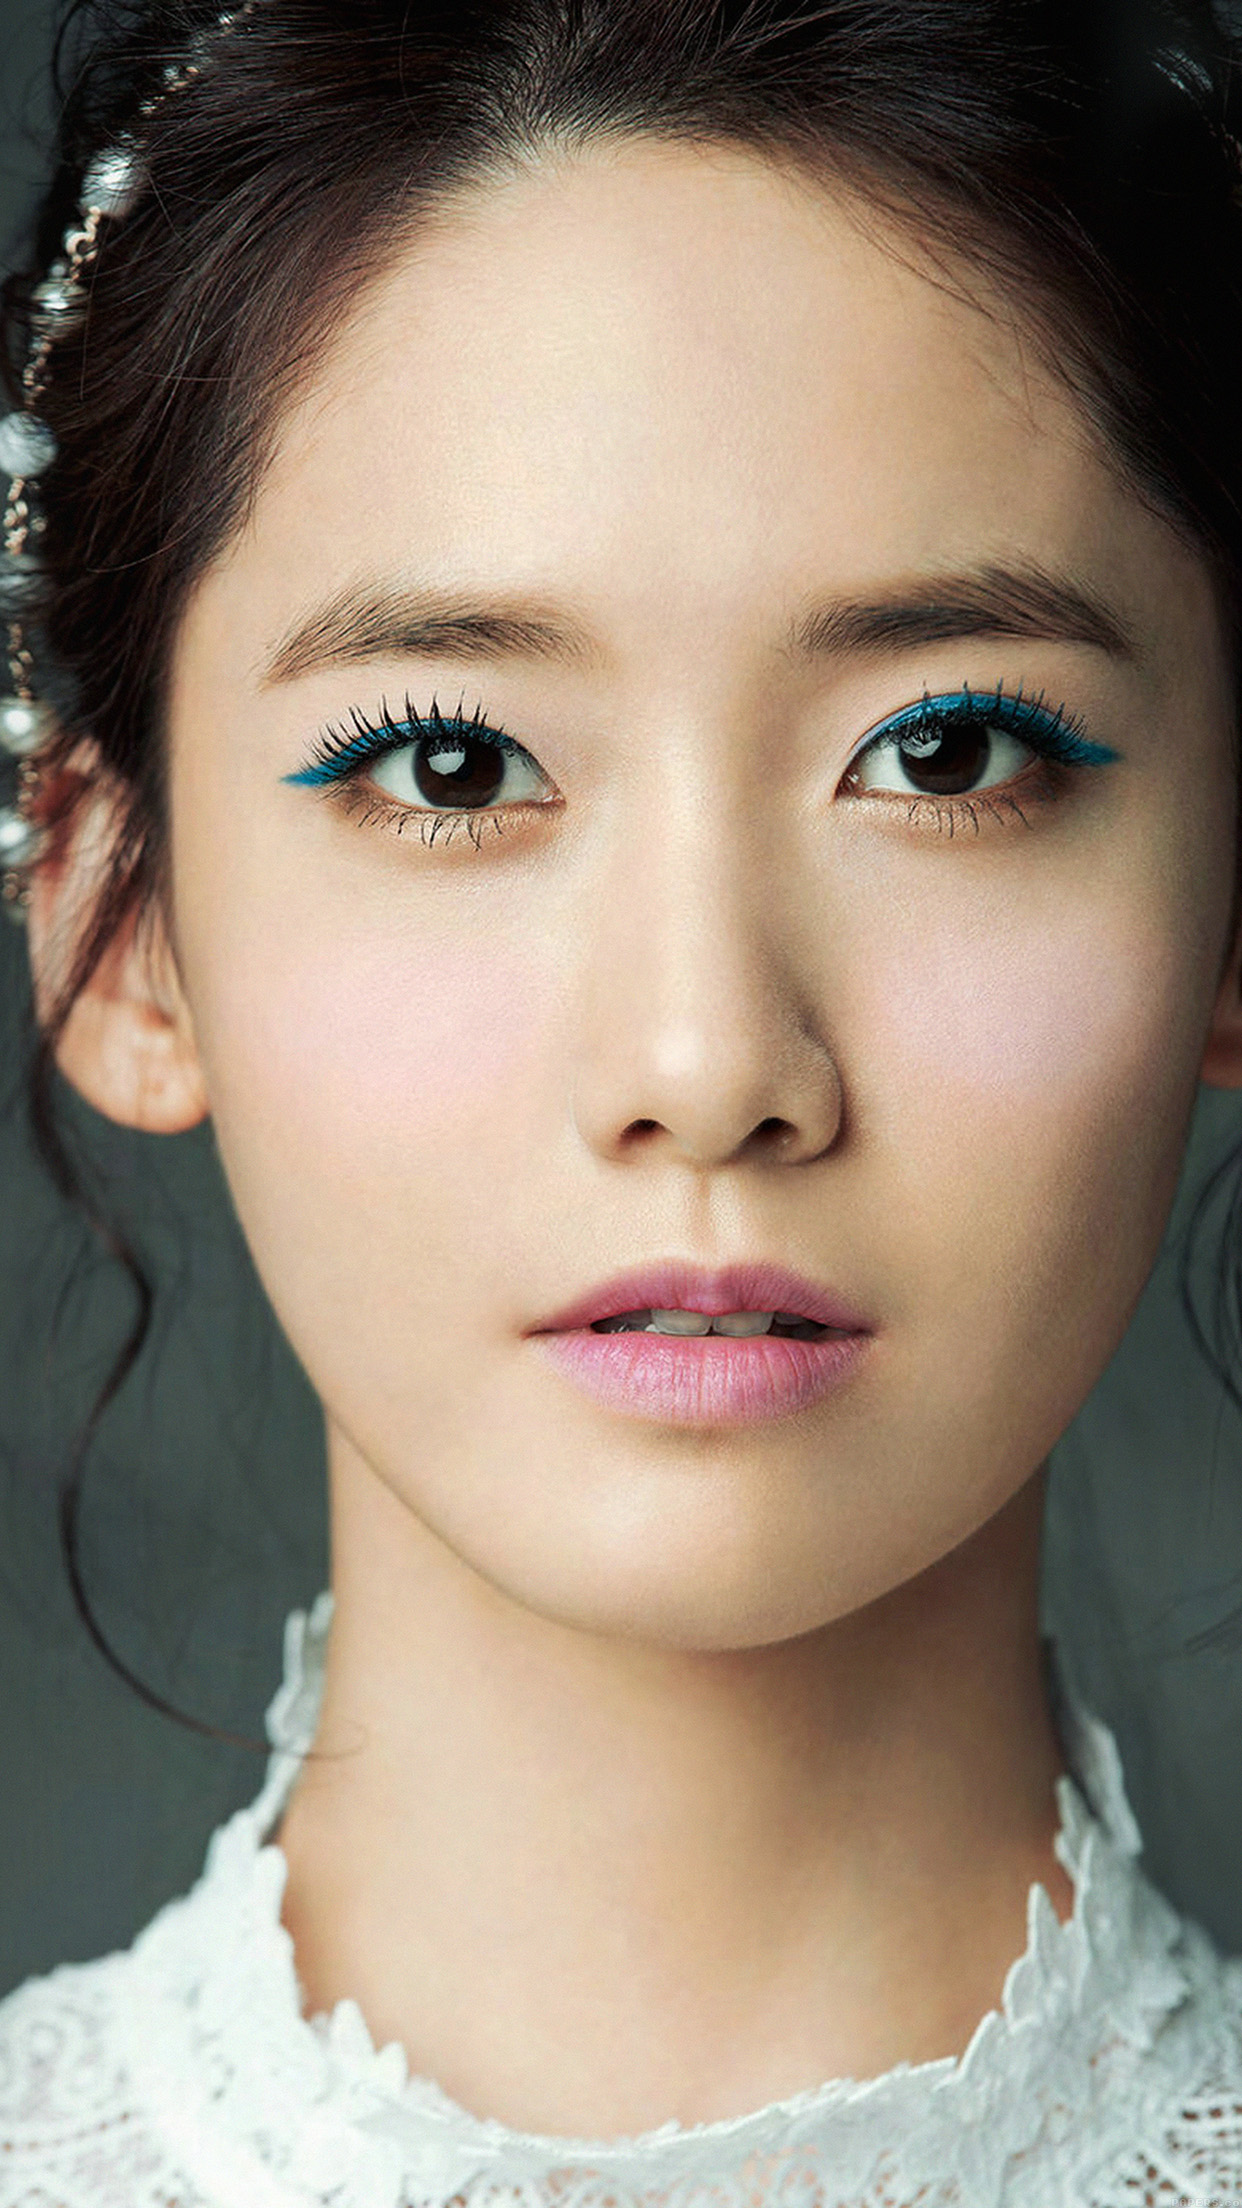 Yuna Yoona Snsd Kpop Girl Cute Music Android wallpaper